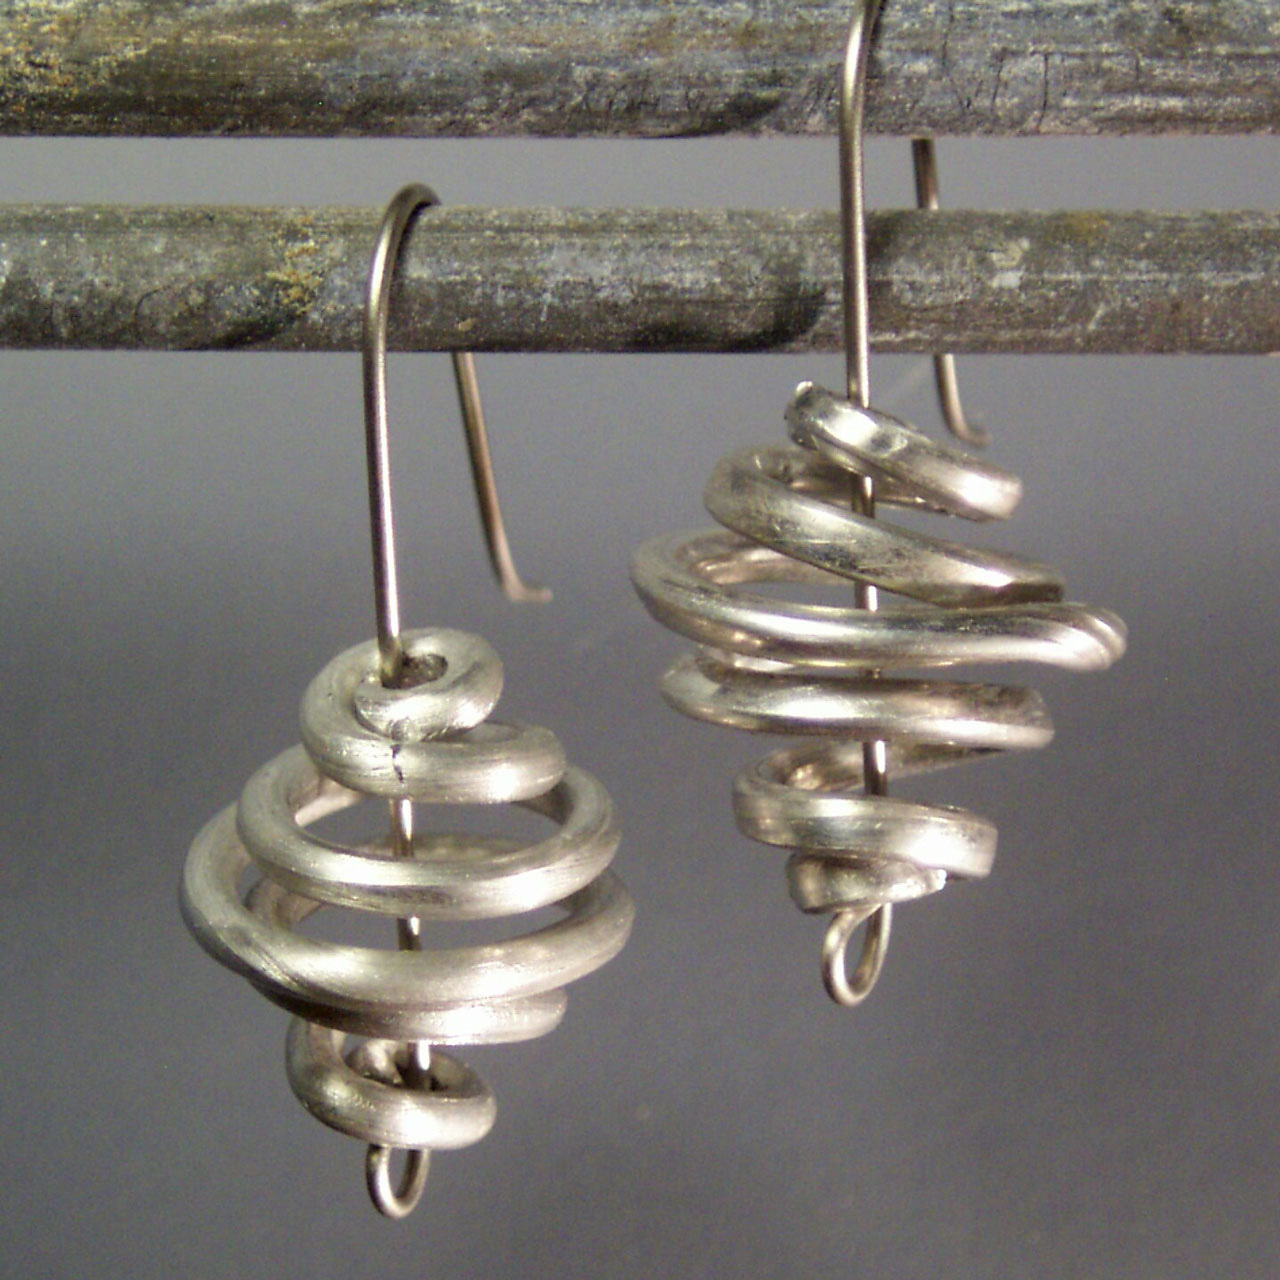 Aluminum Spin Earrings by Mckenna Hallett